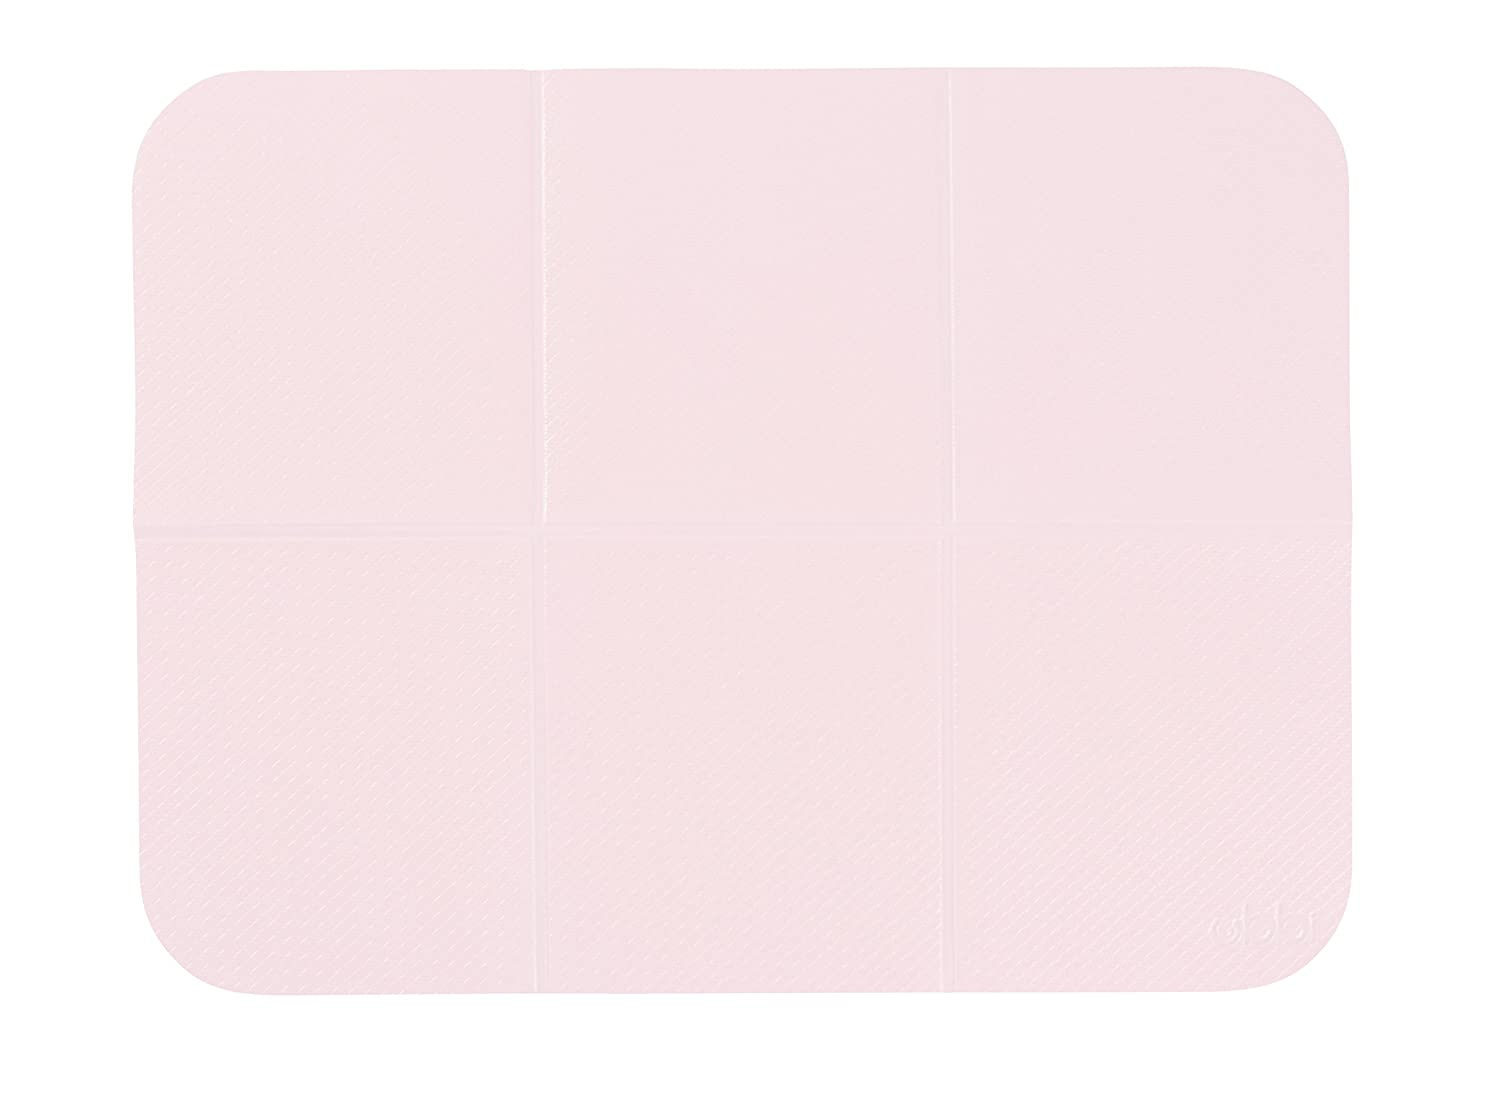 Ubbi Diaper Storage Caddy Wipes Dispenser and Changing Mat Set, Pink Pearhead 10157